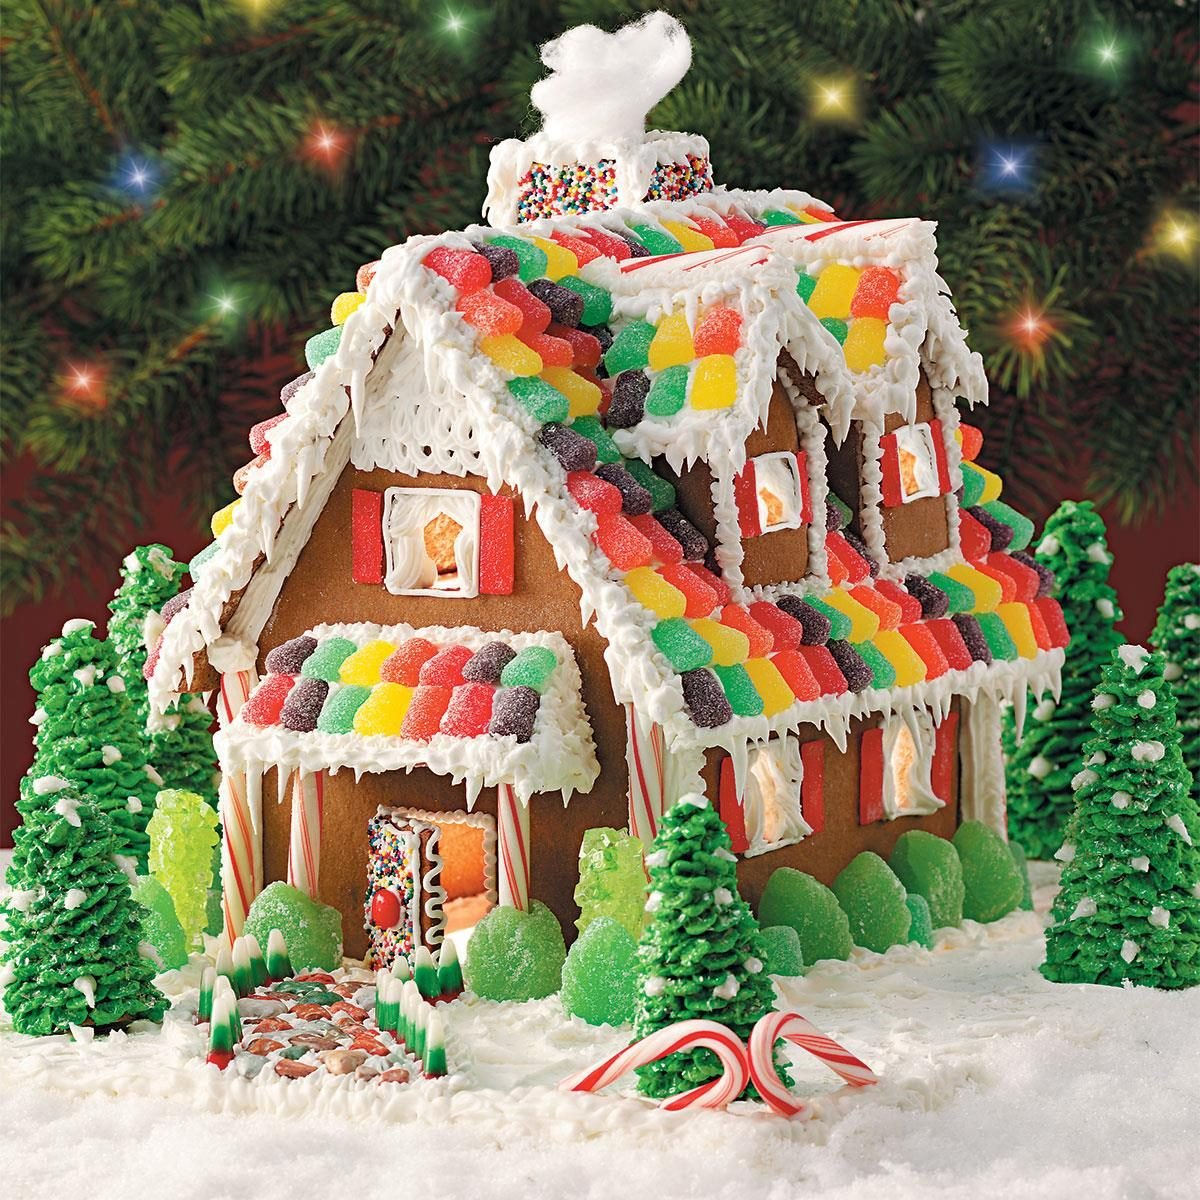 Ideas for a gingerbread house - Gingerbread Christmas Cottage